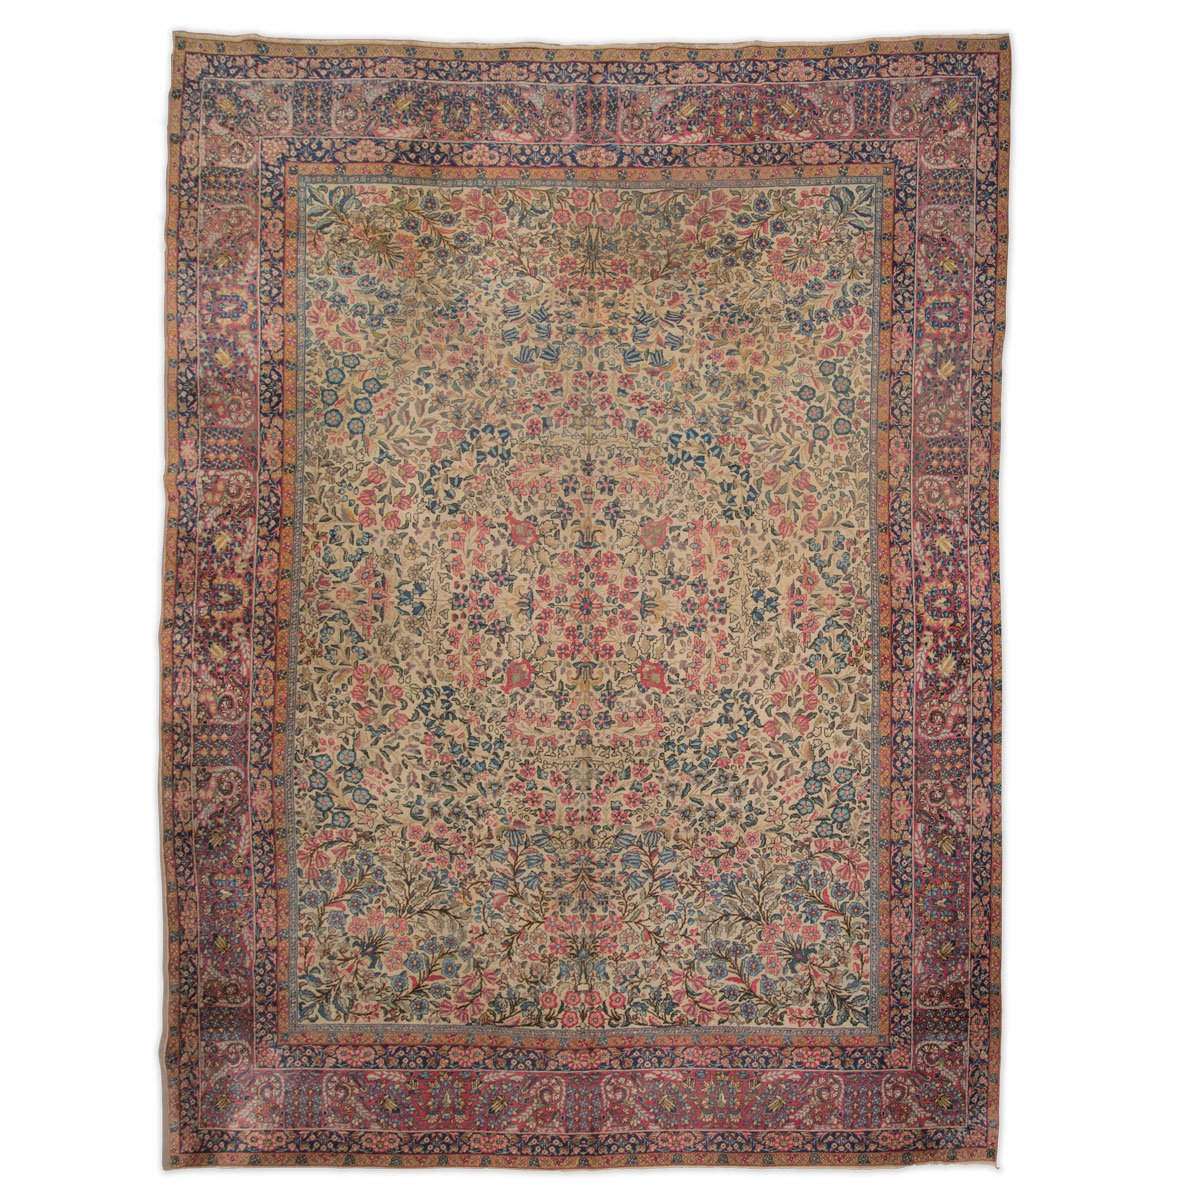 Antique Persian Rug With Fl Decoration 1900s